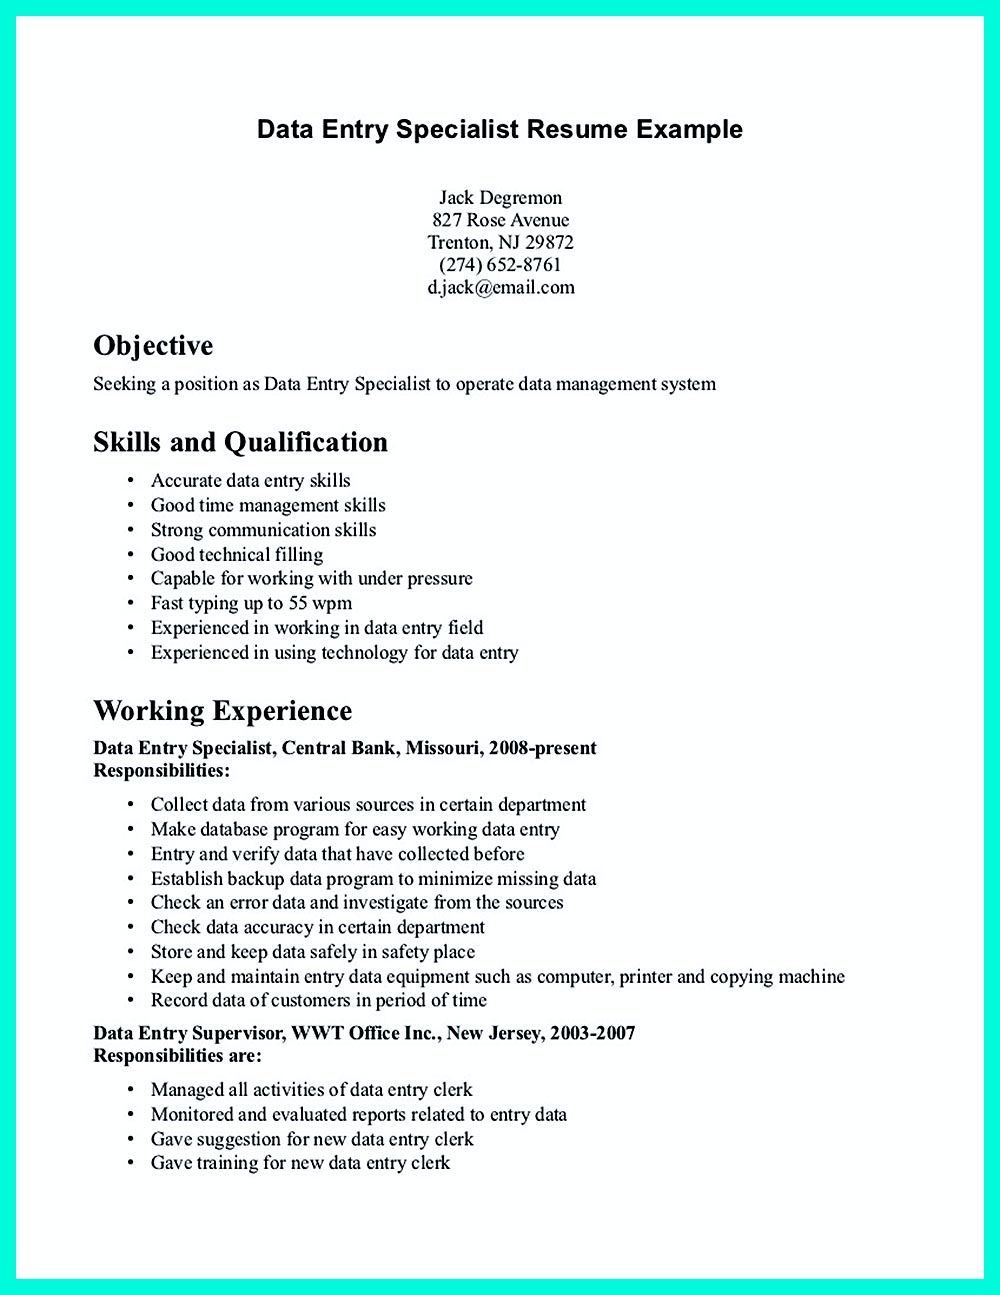 Data Entry Job Description For Resume printable data entry job description for resume photo large size Your Data Entry Resume Is The Essential Marketing Key To Get The Job You Seek